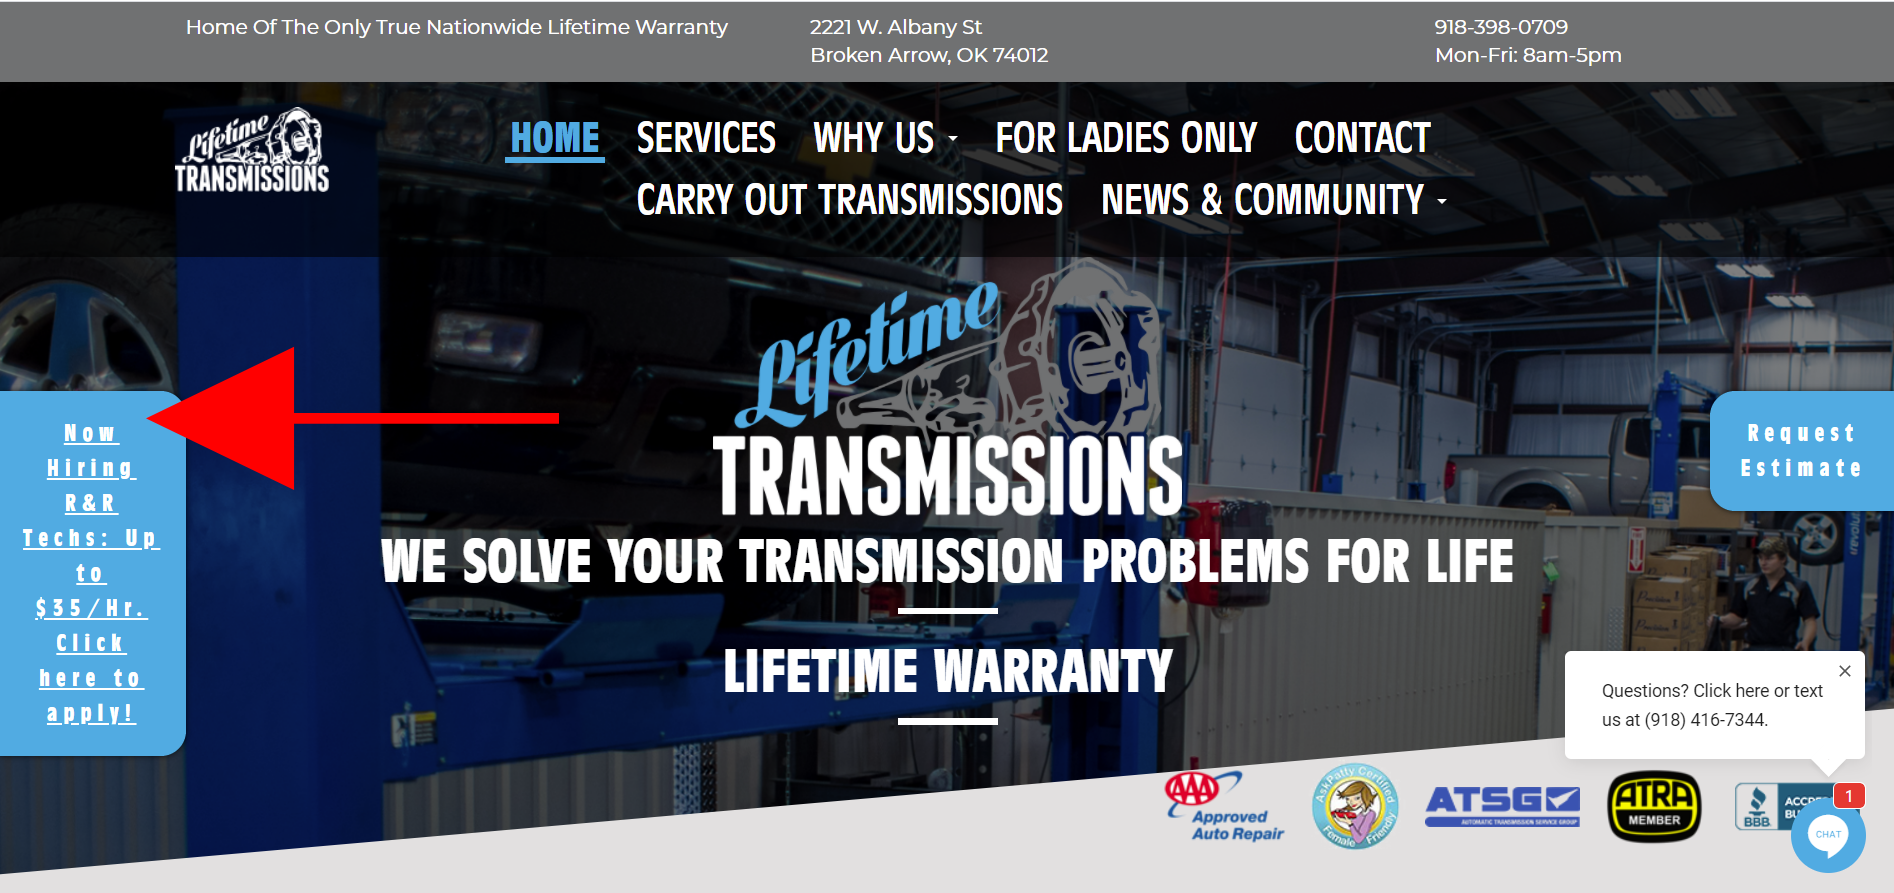 Lifetime Transmissions Homepage with Top Shop